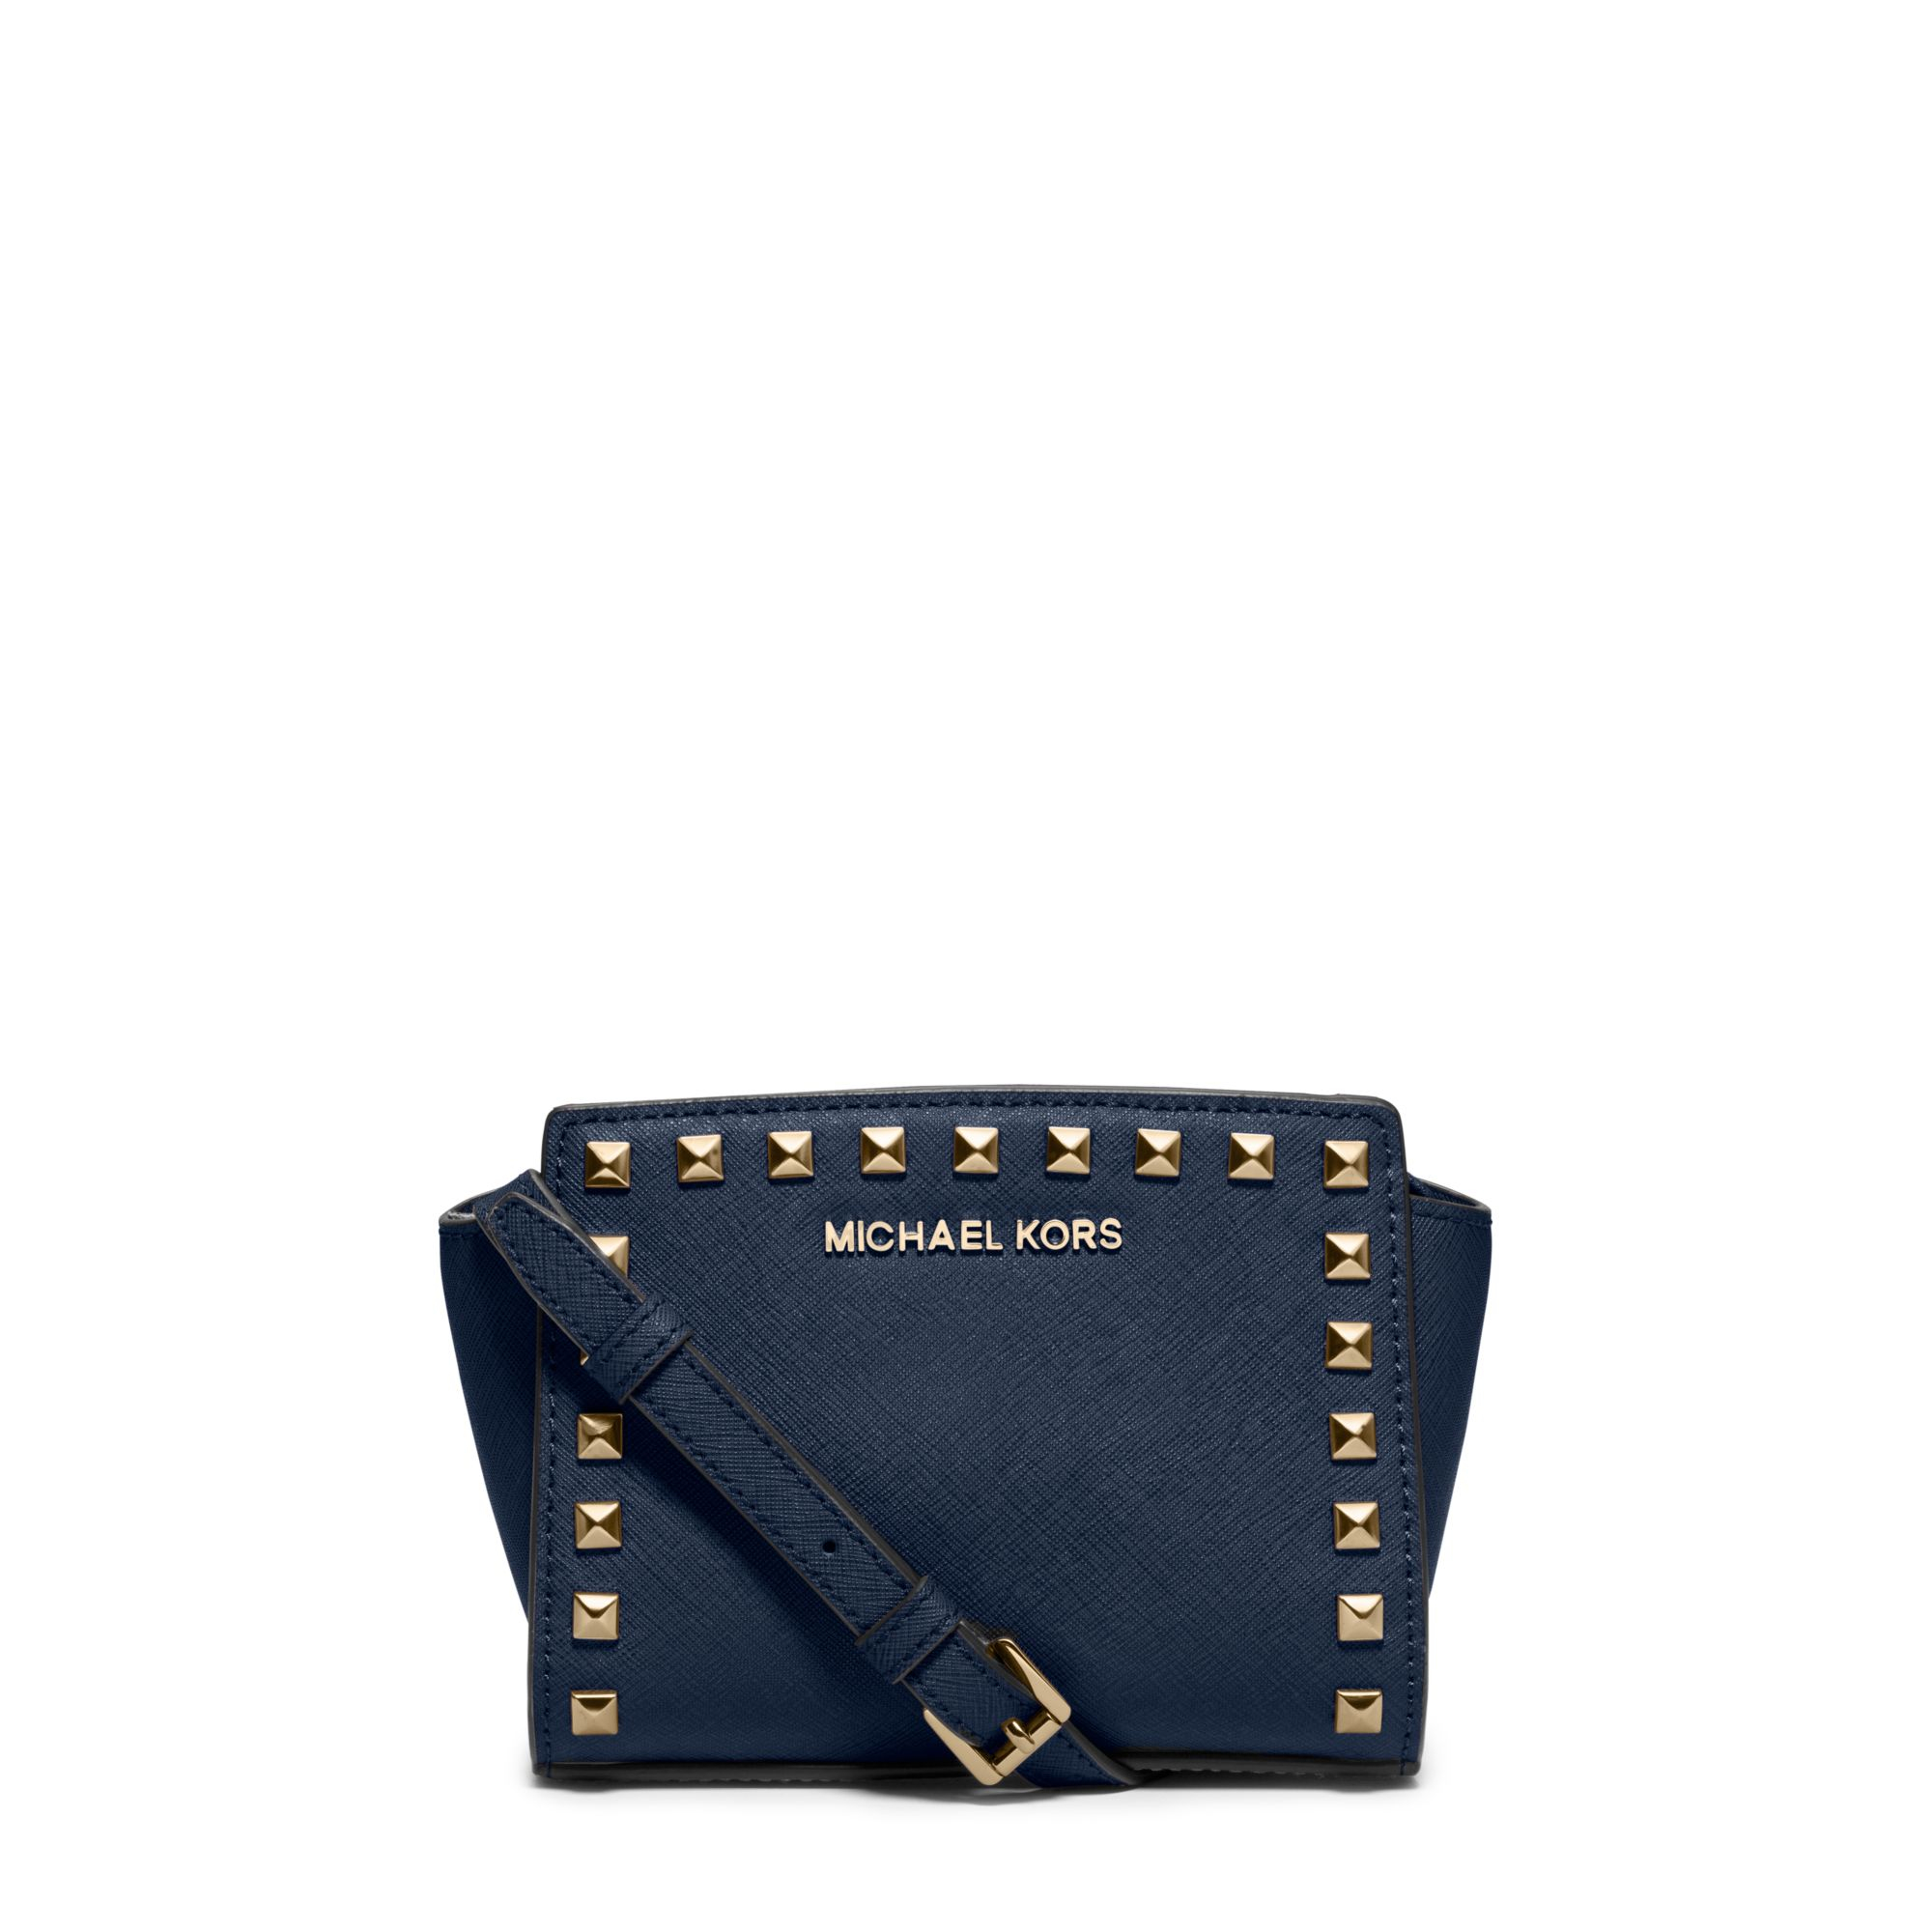 b194ac642115 Lyst - Michael Kors Selma Mini Studded Leather Crossbody in Blue